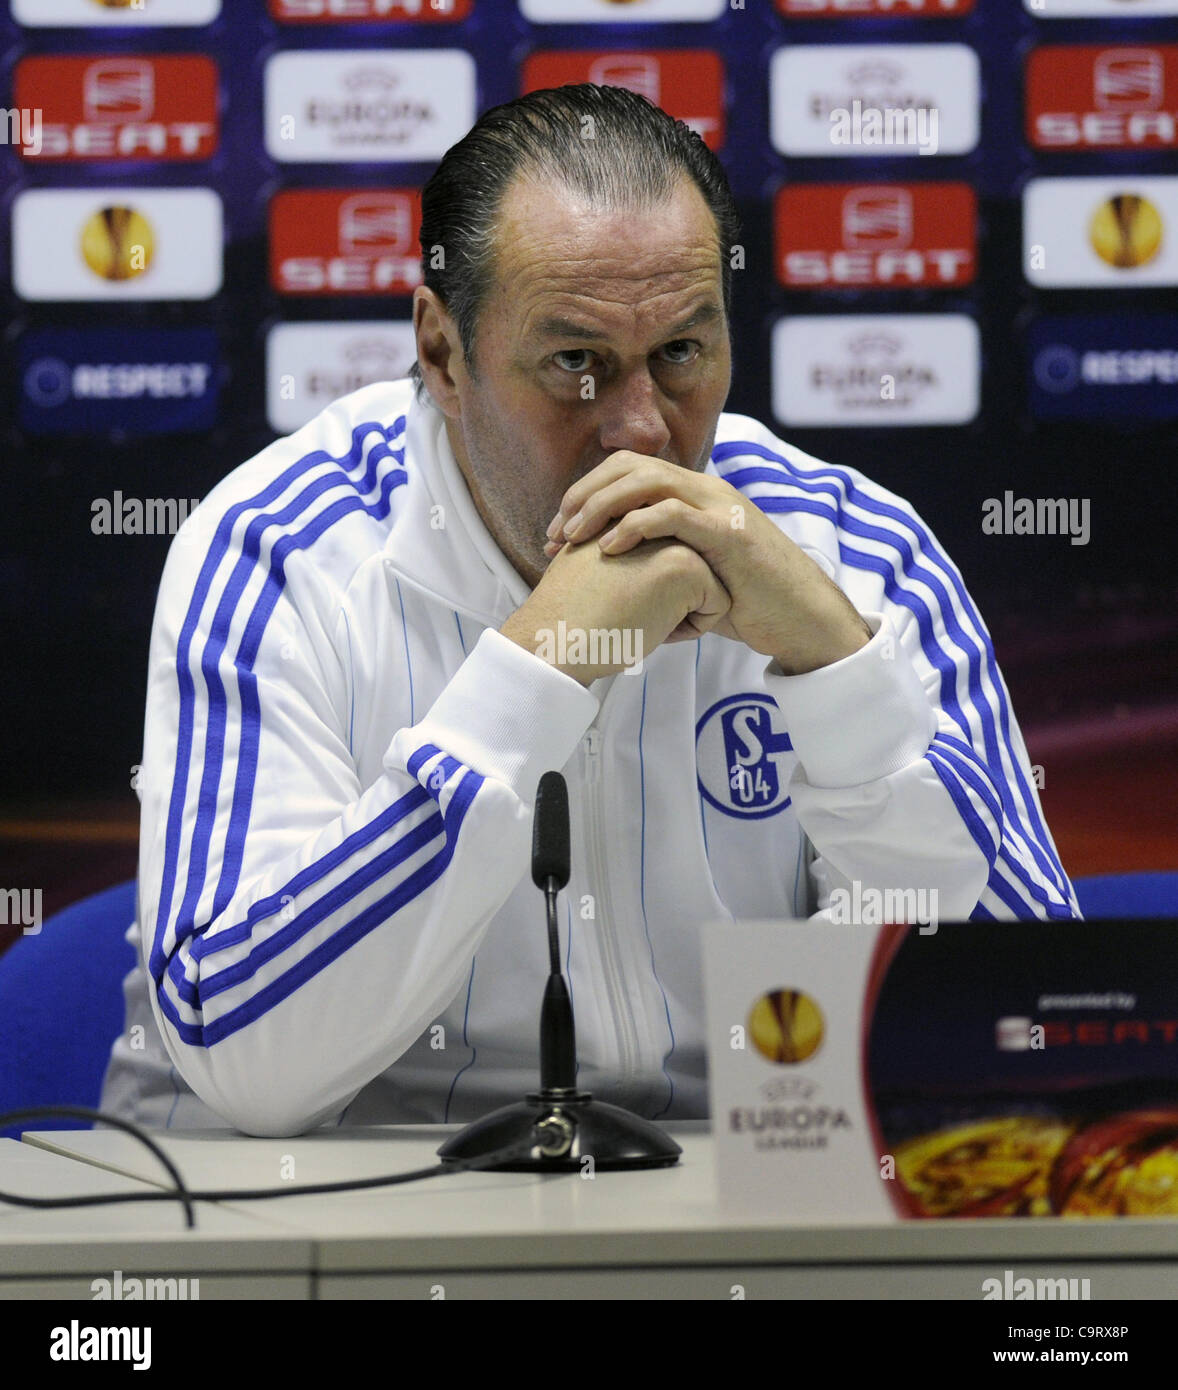 Shalke 04 coach Huub Stevens is seen during a press conference prior to the Europa League match FK Viktoria Plzen - Stock Image